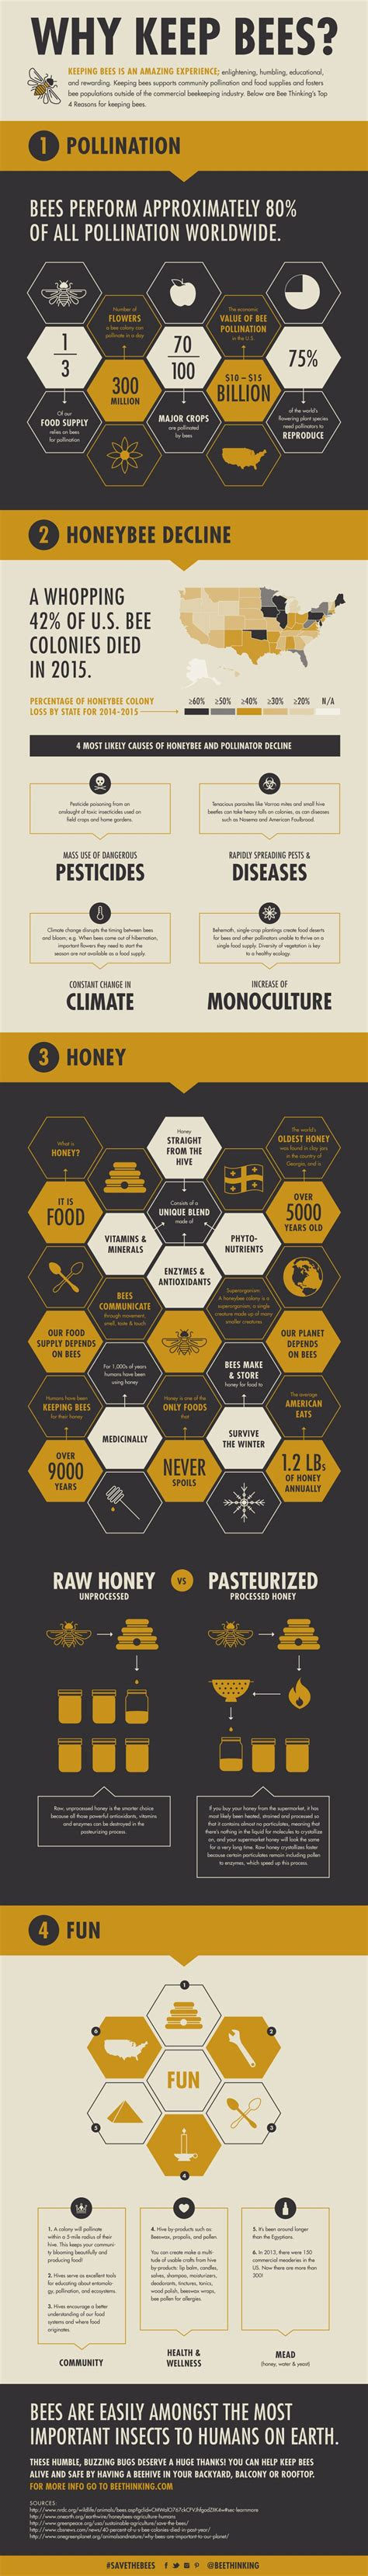 How To Keep Bees Or Bee Keeping In Rhode Island why keep bees bees beekeeping and environment